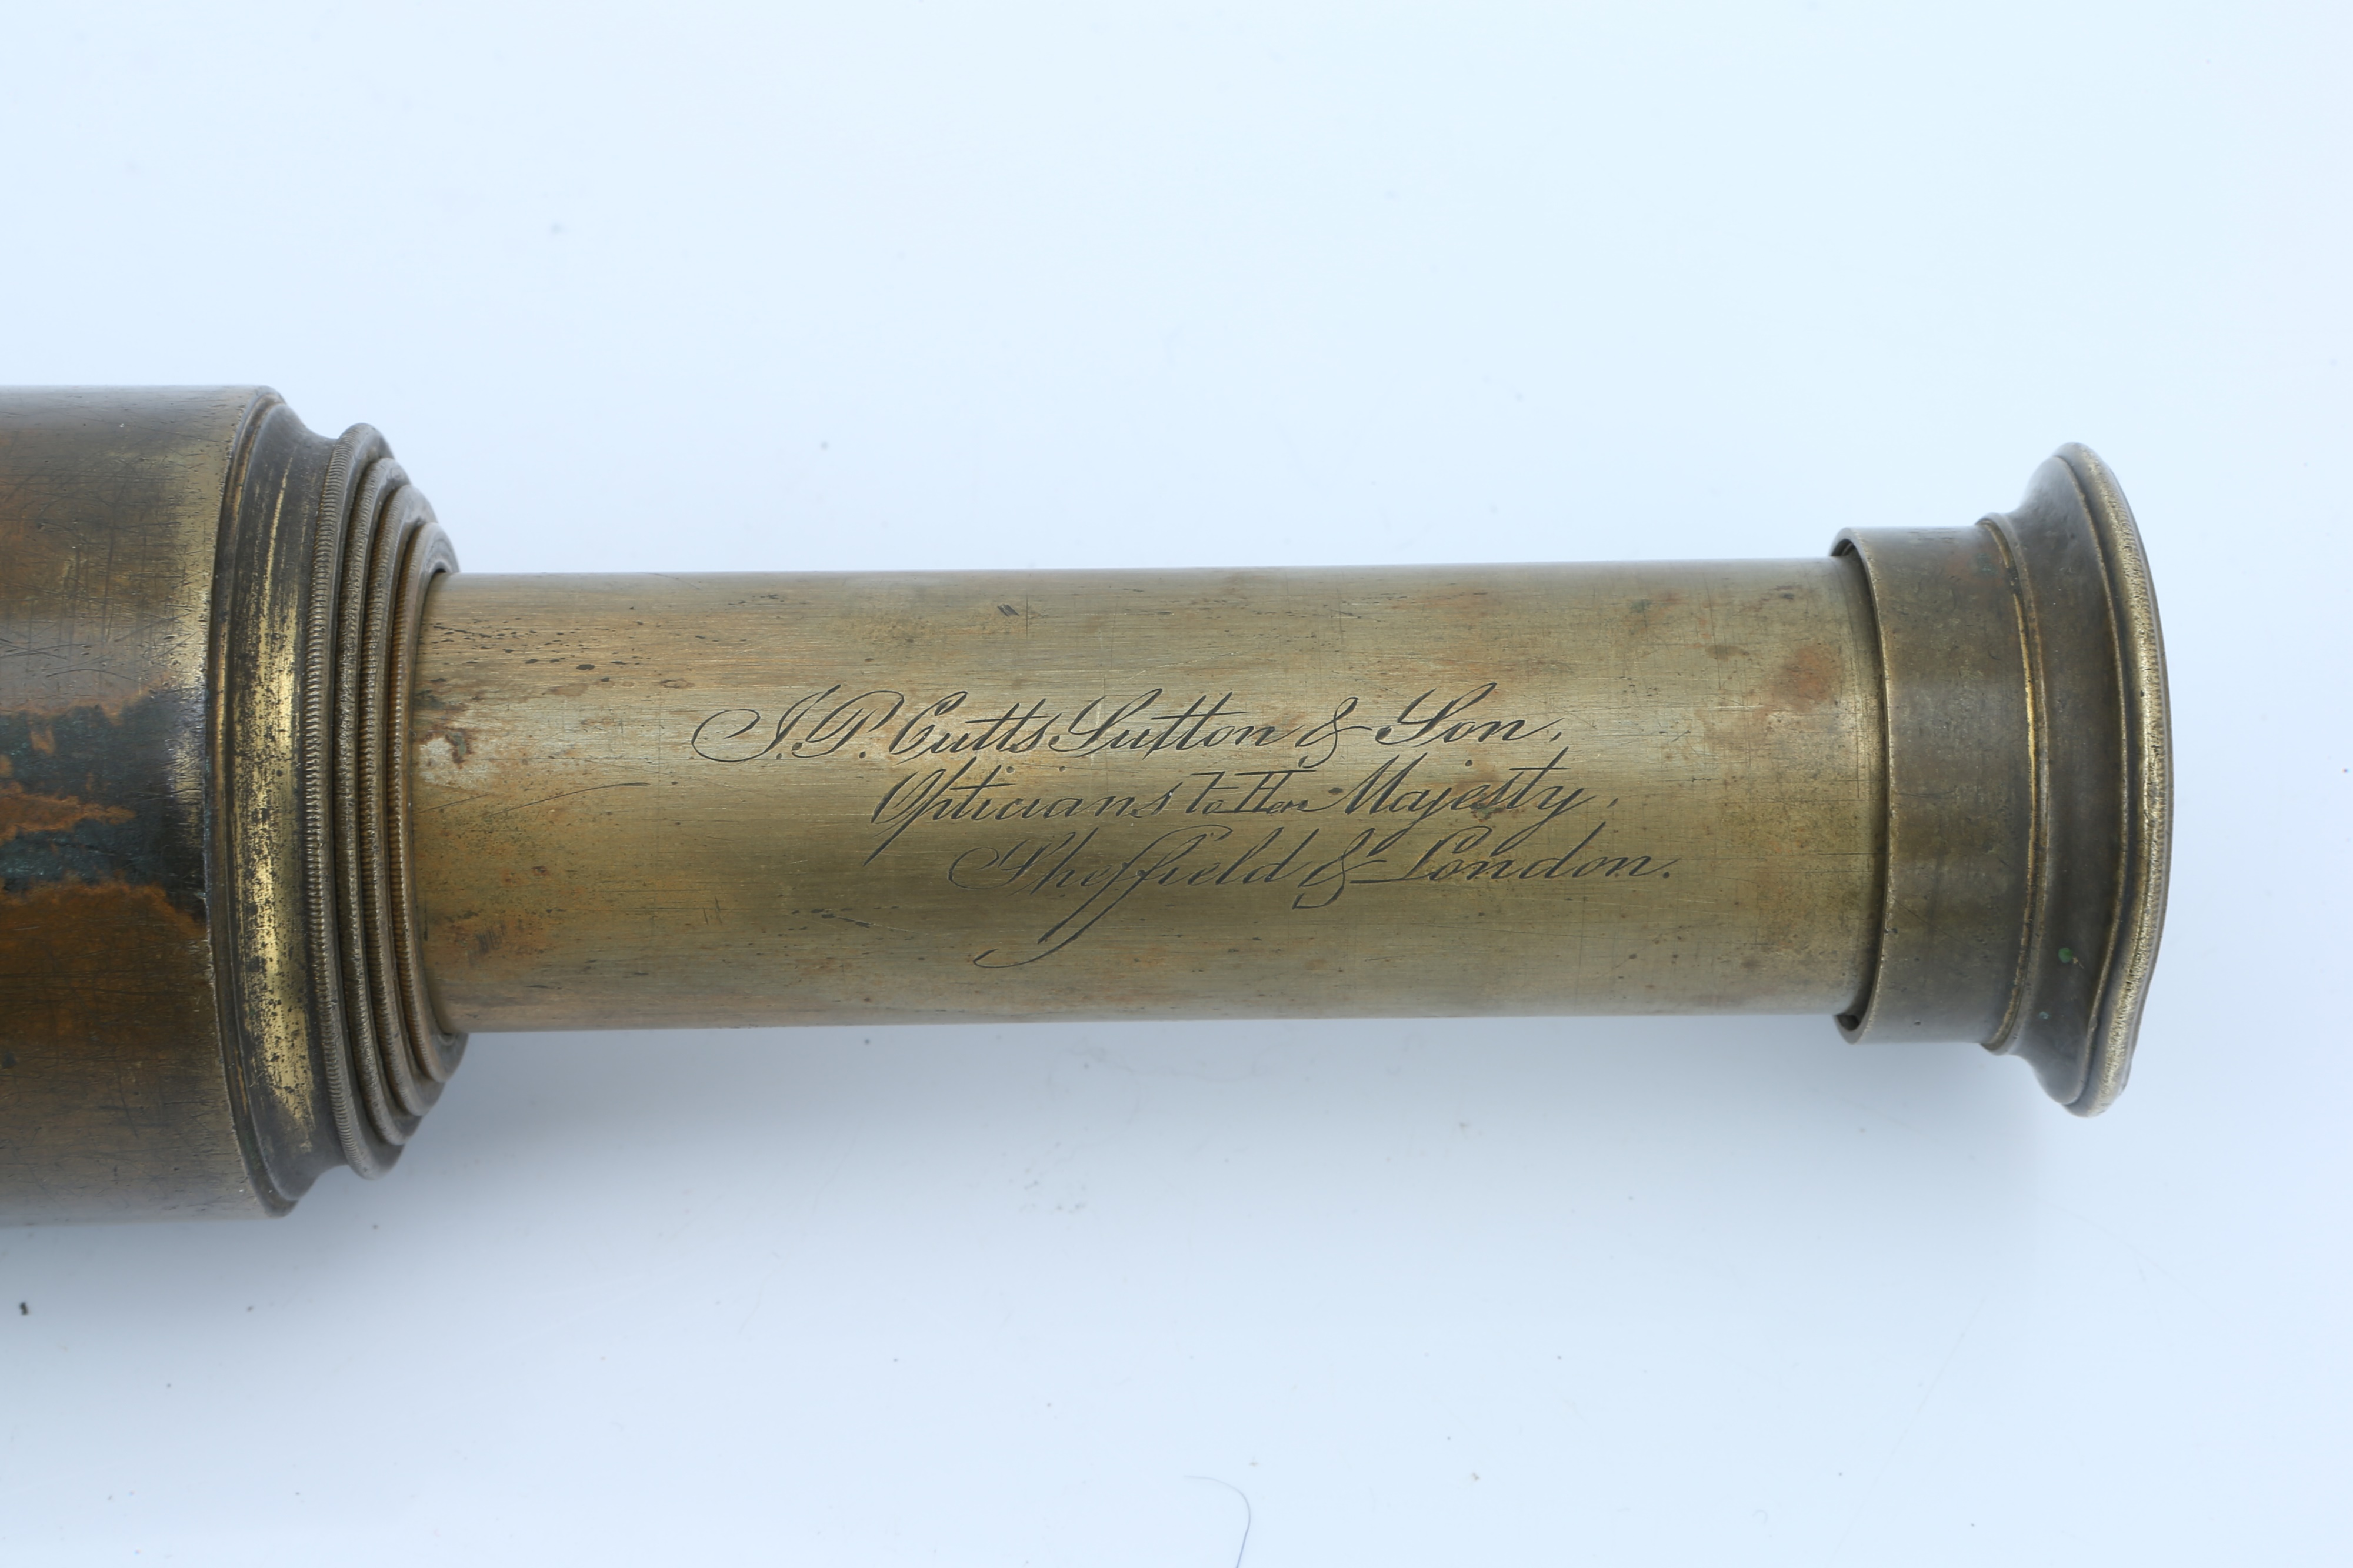 Two Victorian Brass Telescopes, - Image 2 of 2